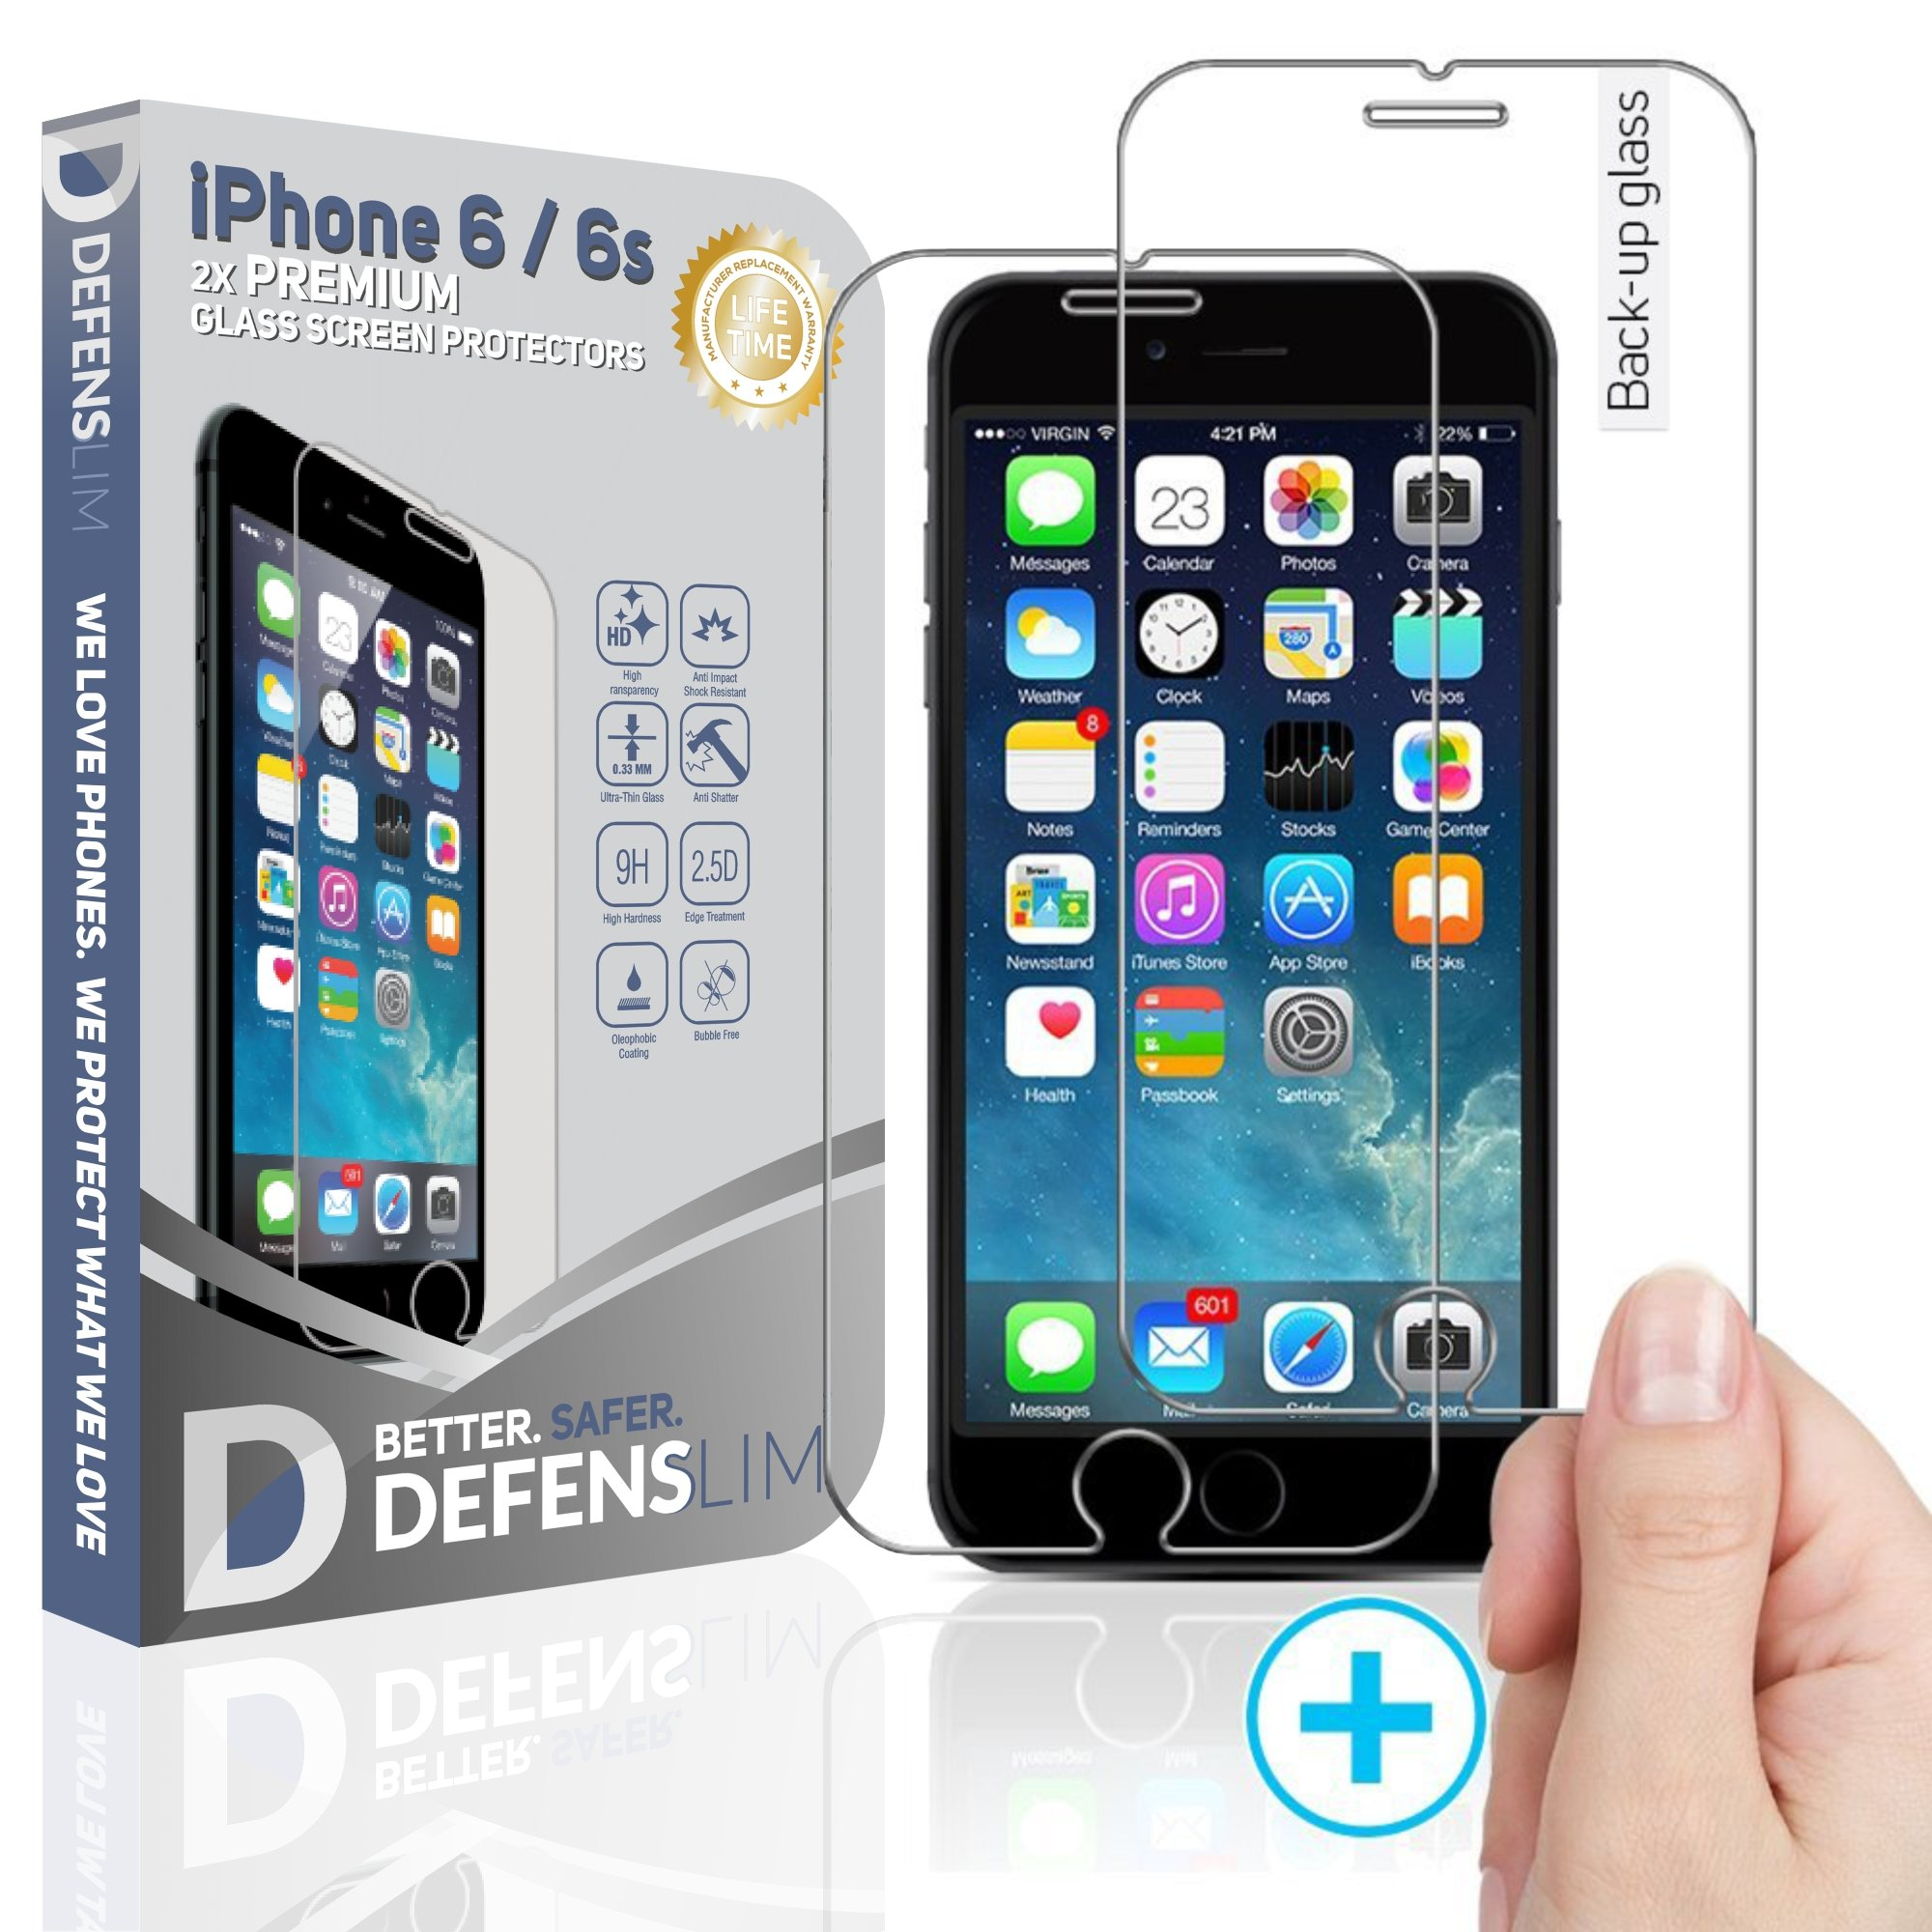 Witkeen Tempered Glass Screen Protector with Premium Anti-Shatter and Oleophobic Treatment for iPhone 6/6s - Crystal Clear (2 Pack)